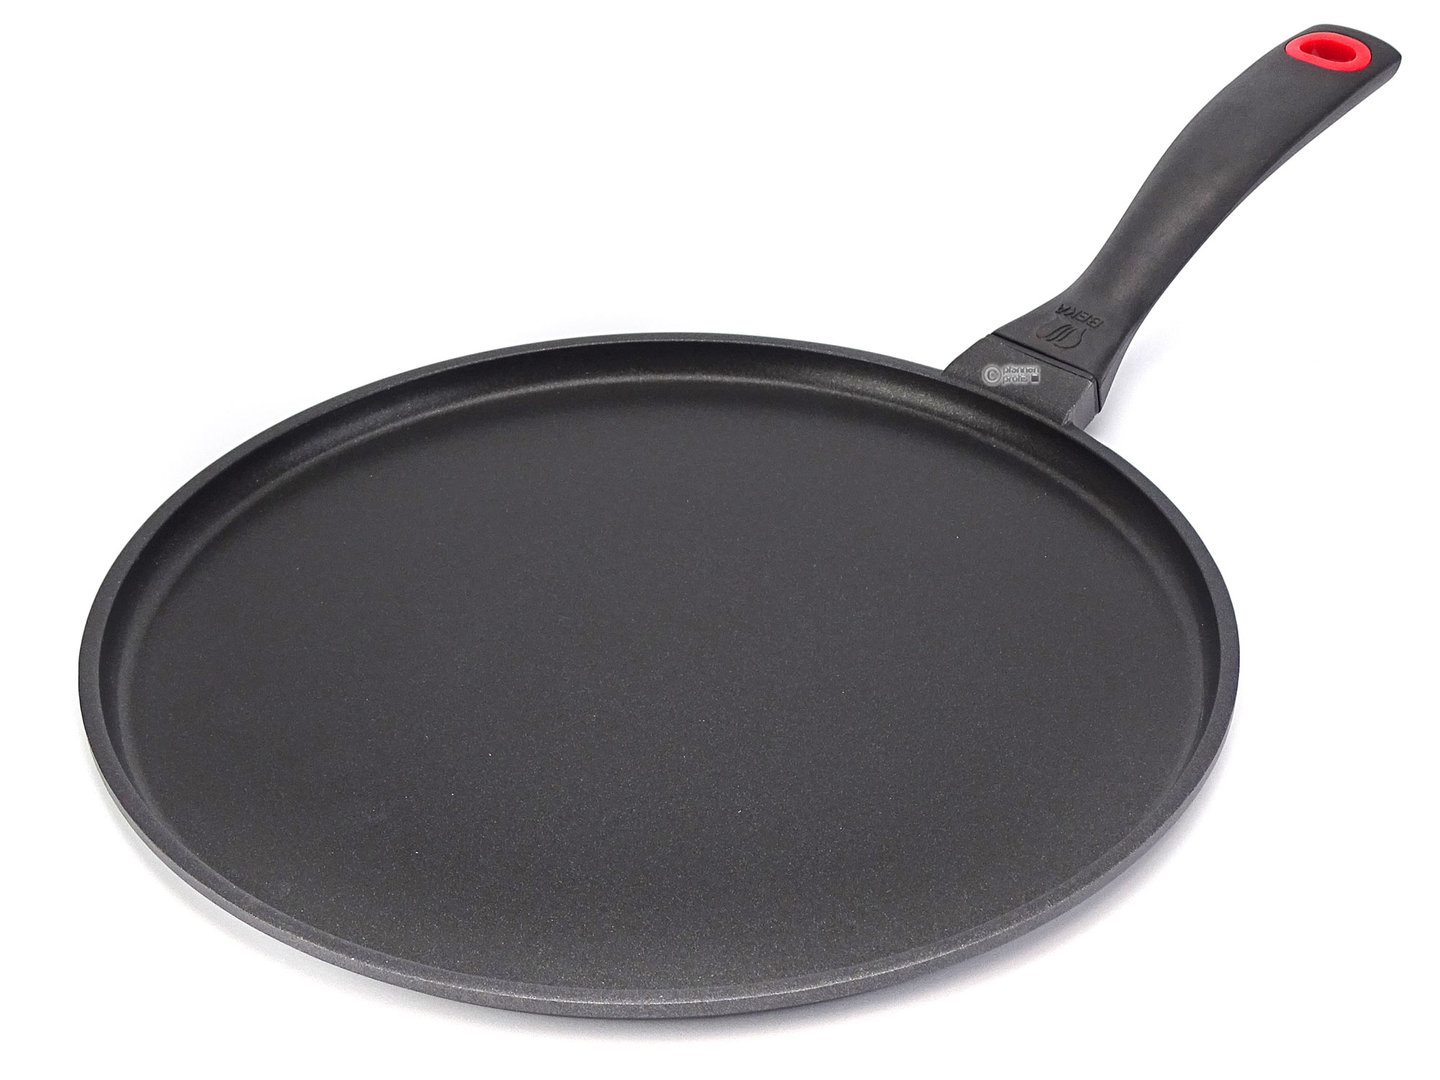 Emaille Bratpfanne Crêpes Pan Non-stick Induction | Buy Online At